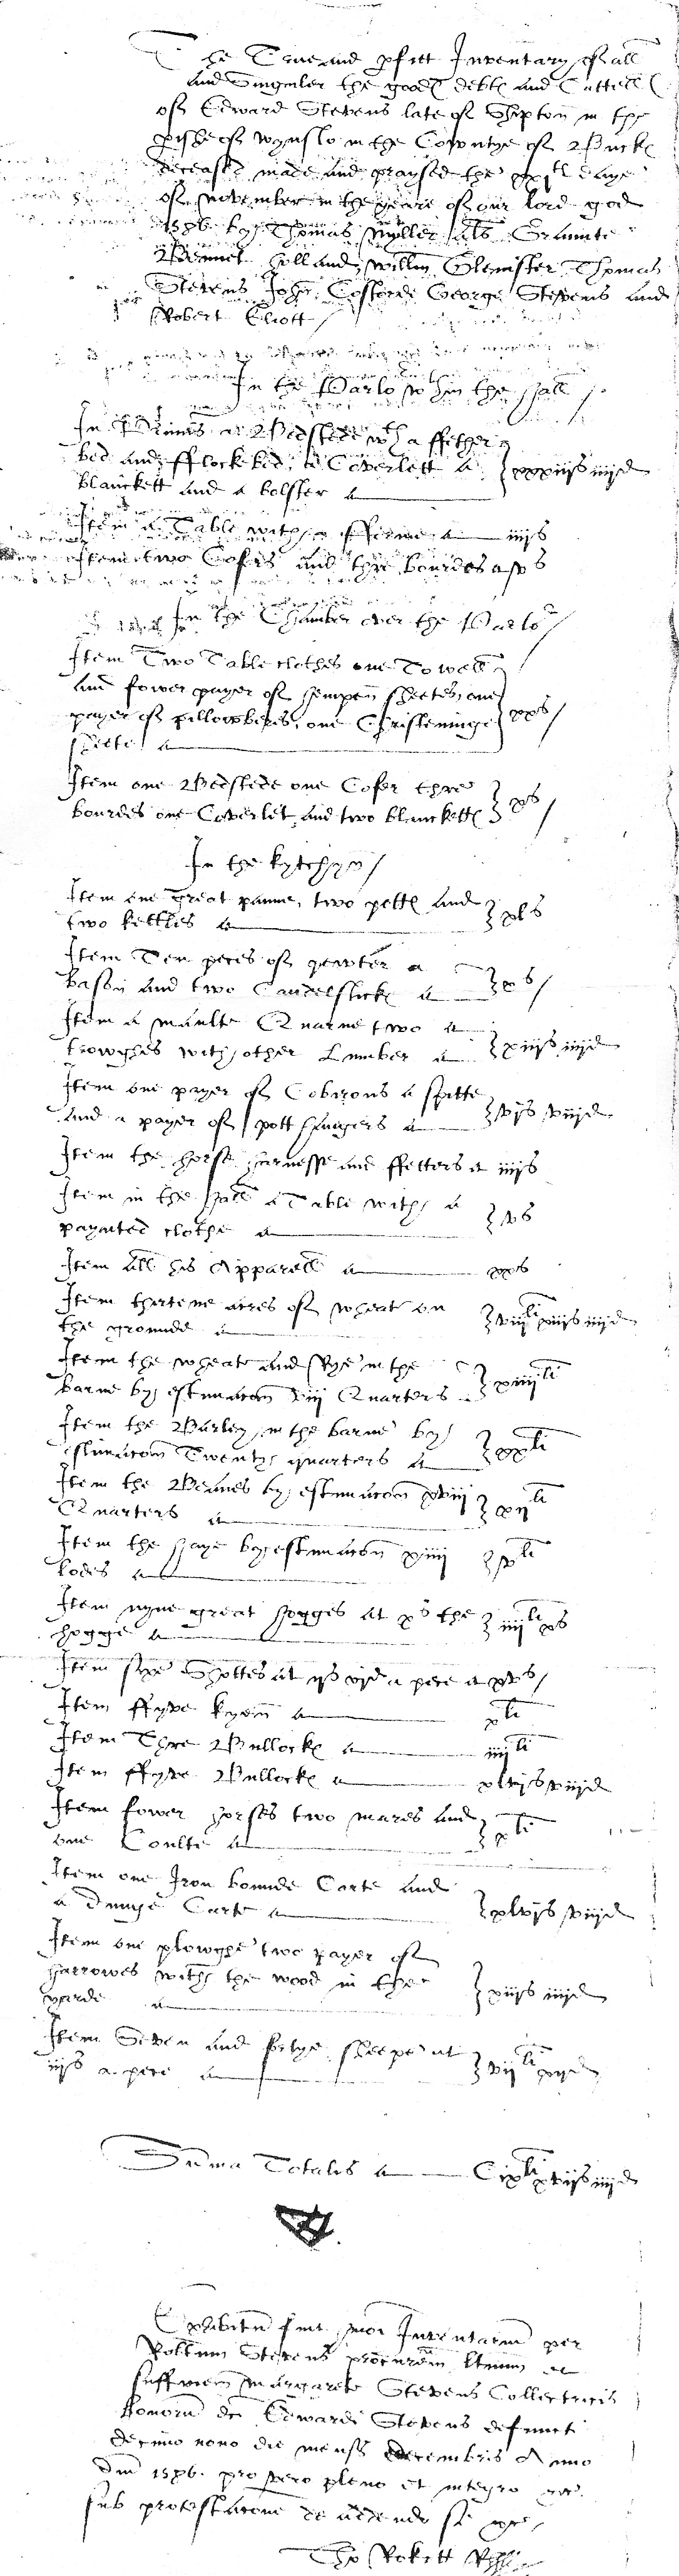 Inventory of Edward Stevens p1